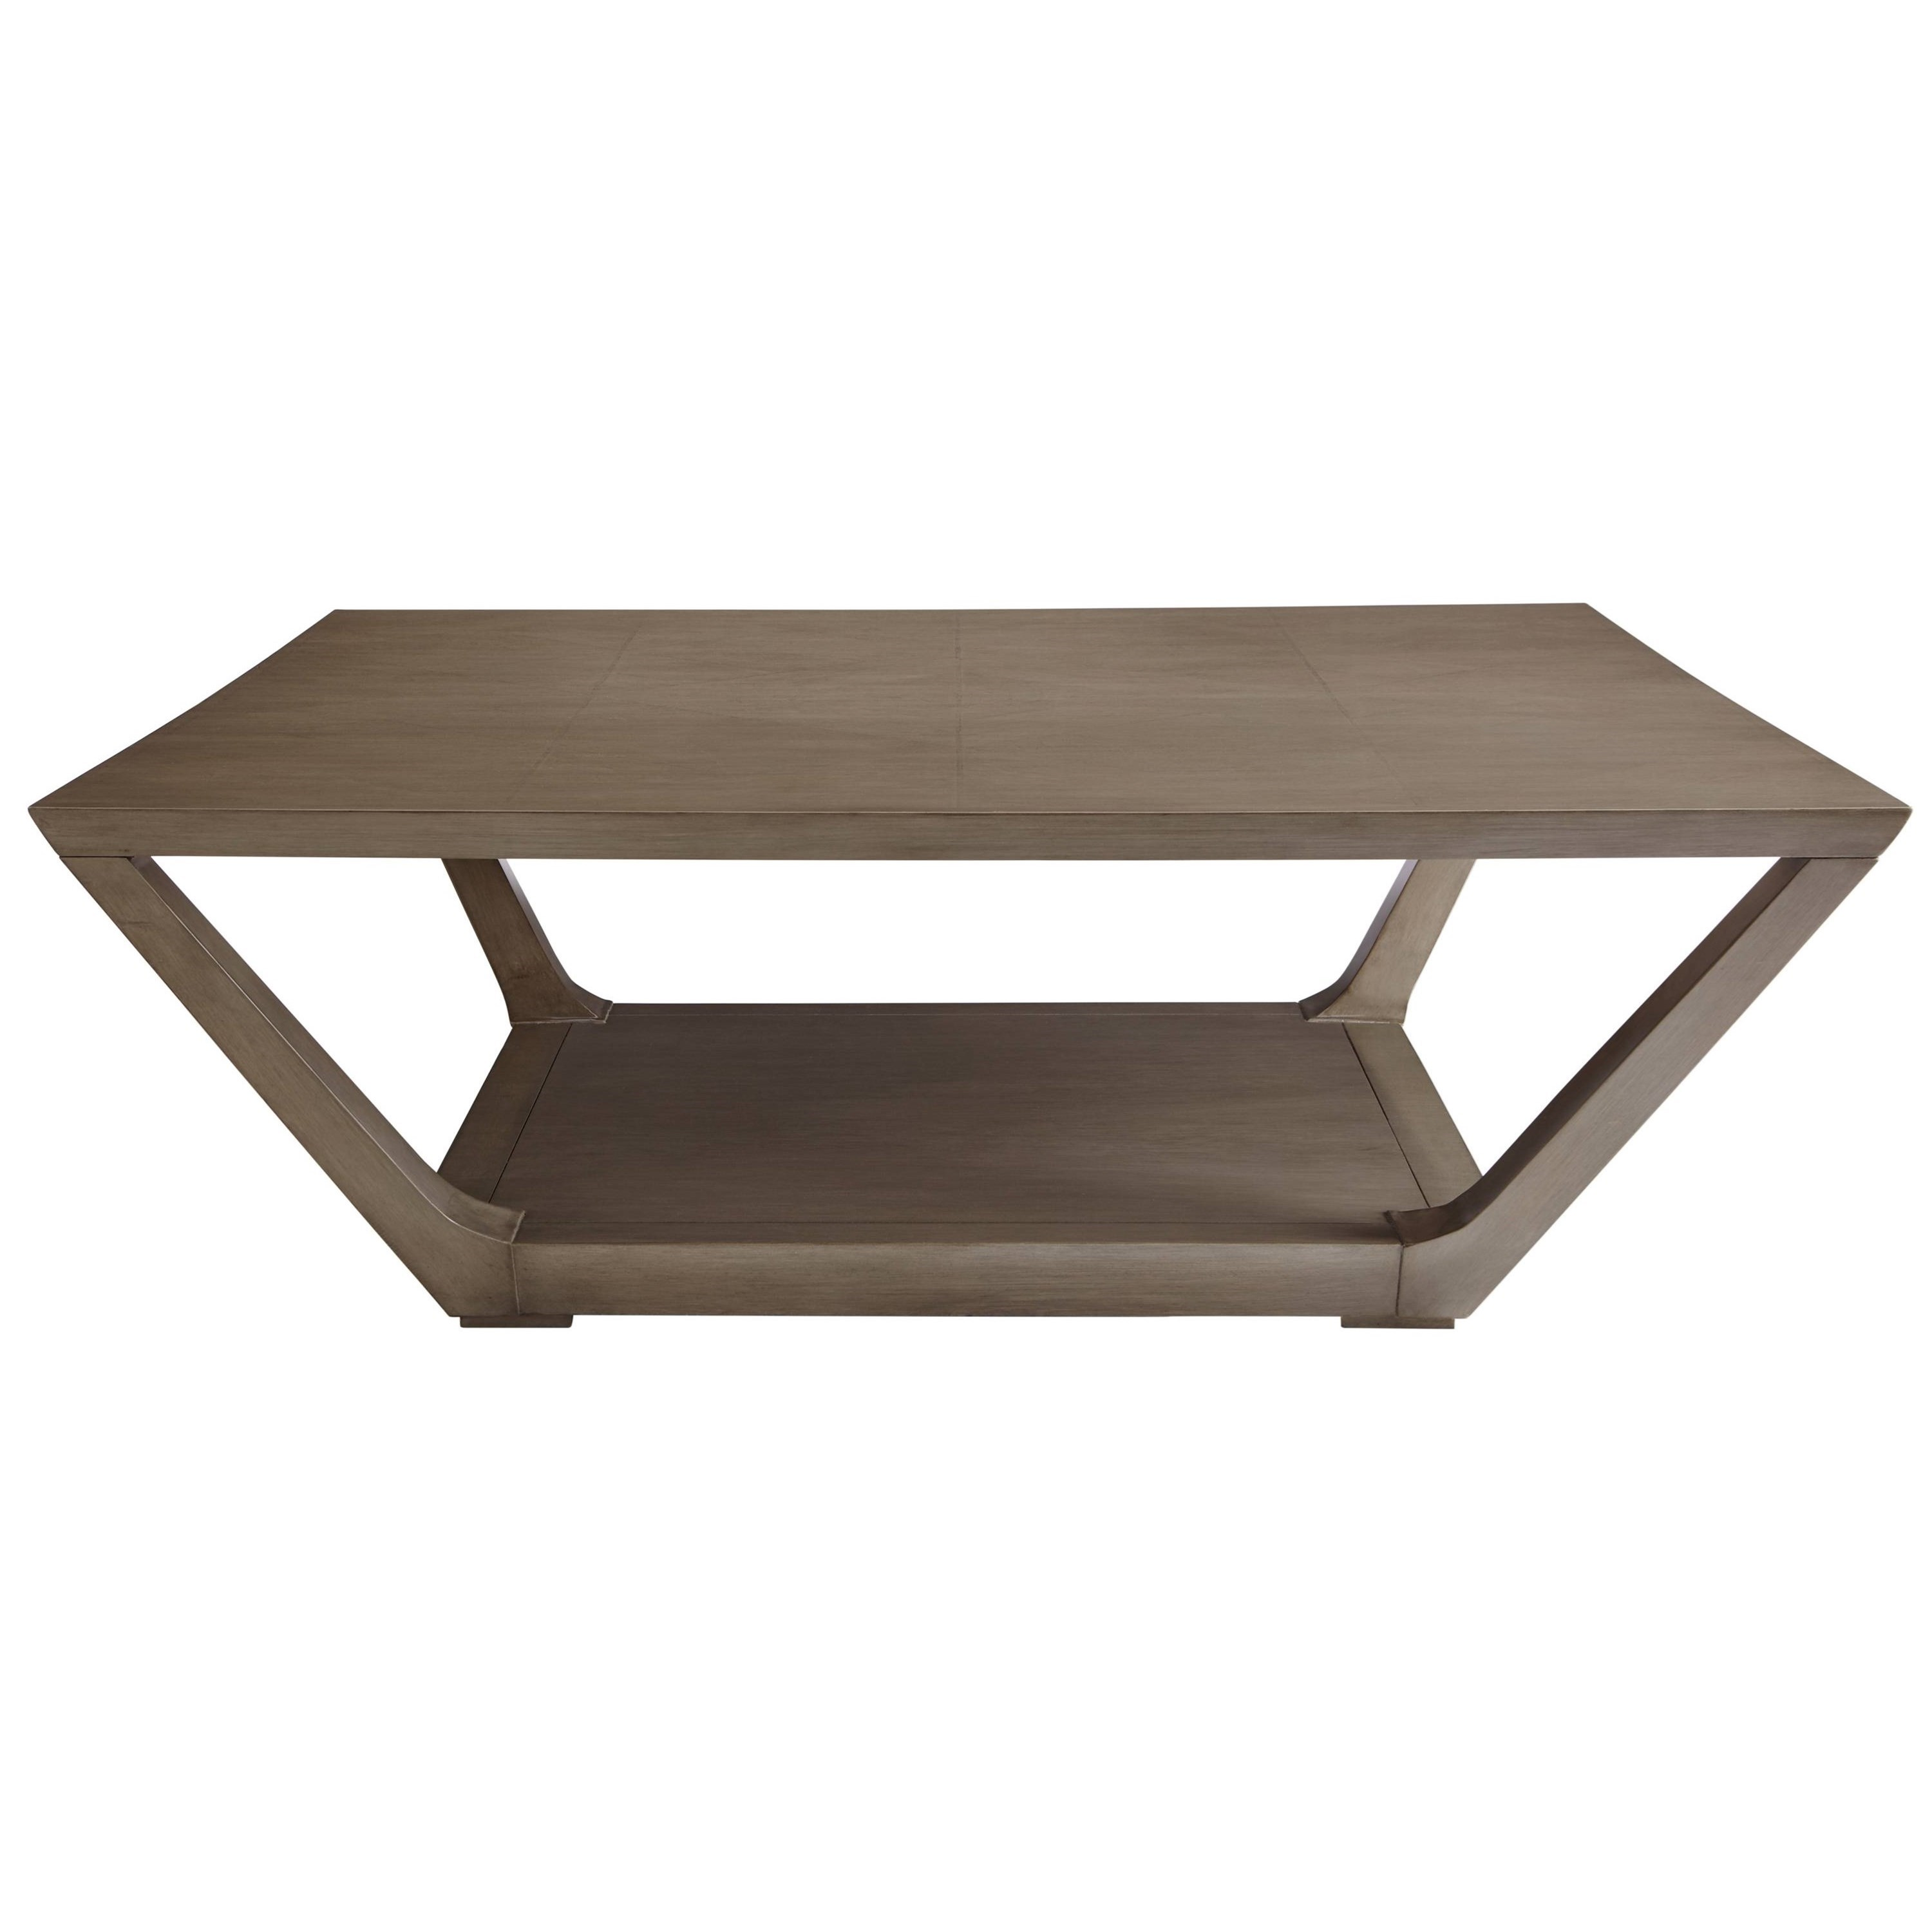 Stanley Furniture Coastal Living Oasis Poseidon Cocktail Table